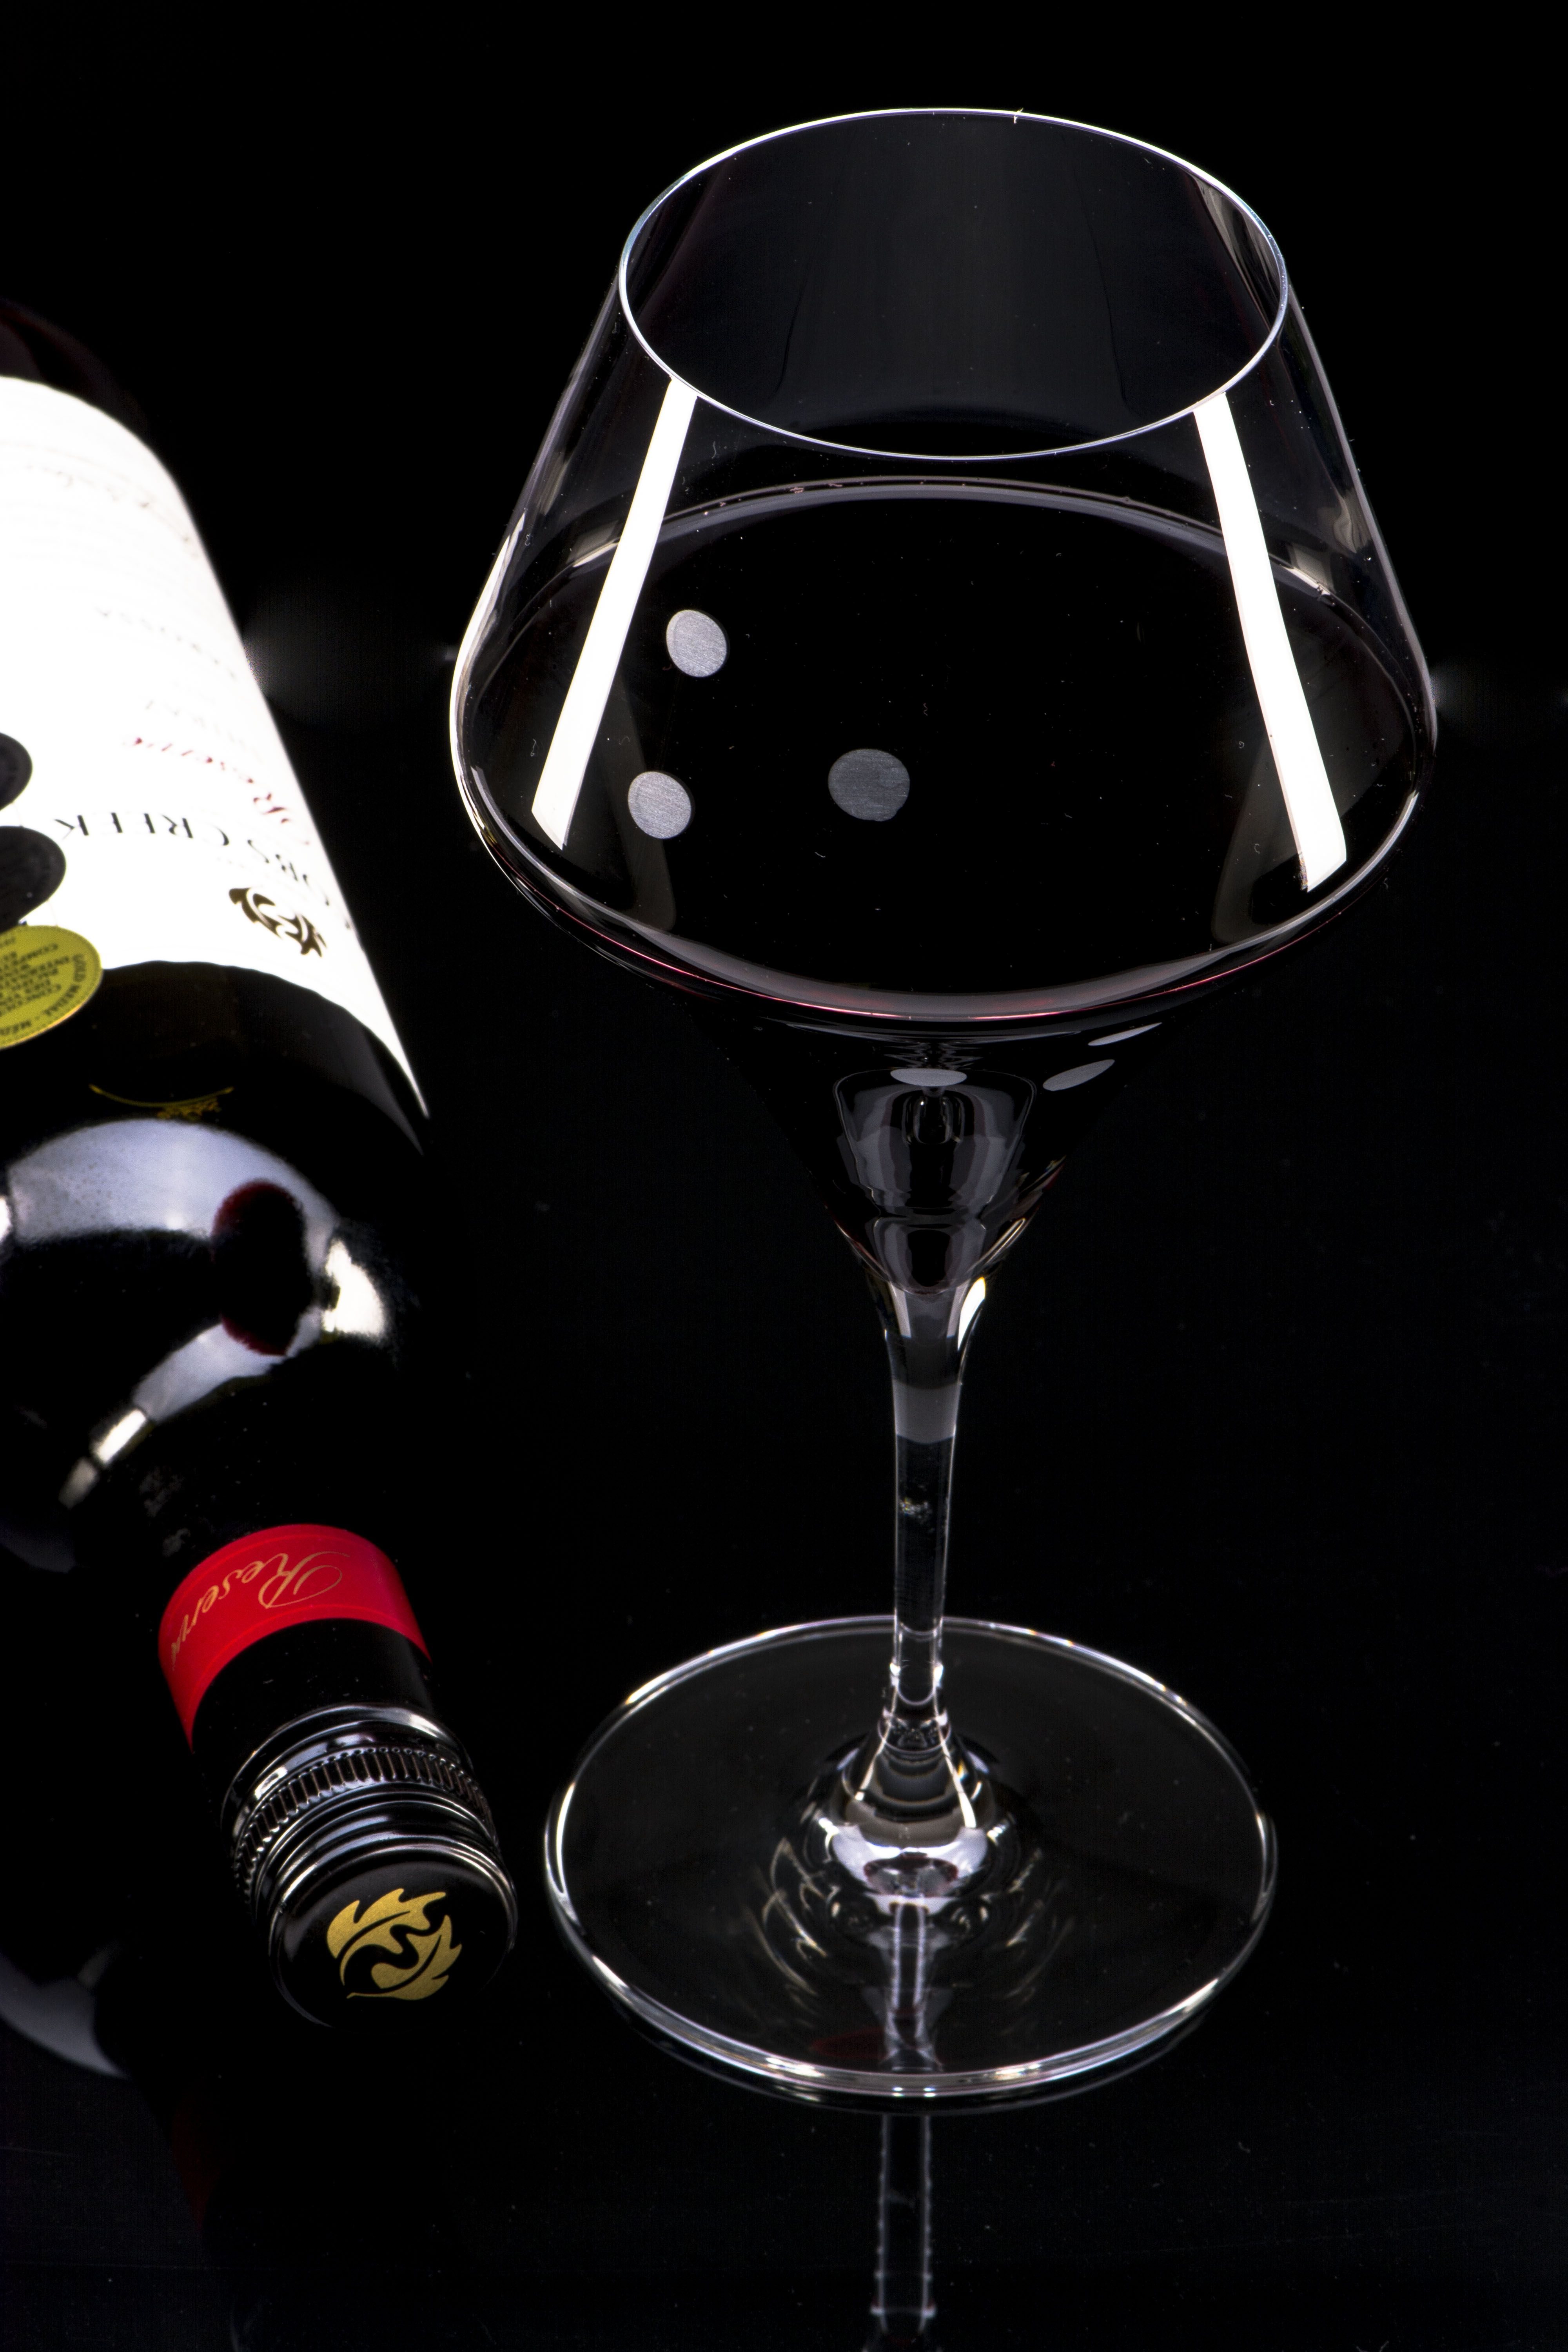 Luxury Look And Feel Of This Diamond Shaped Glass Is Unique Www Glasswithcrystals Com Vinos Licor Bodegas